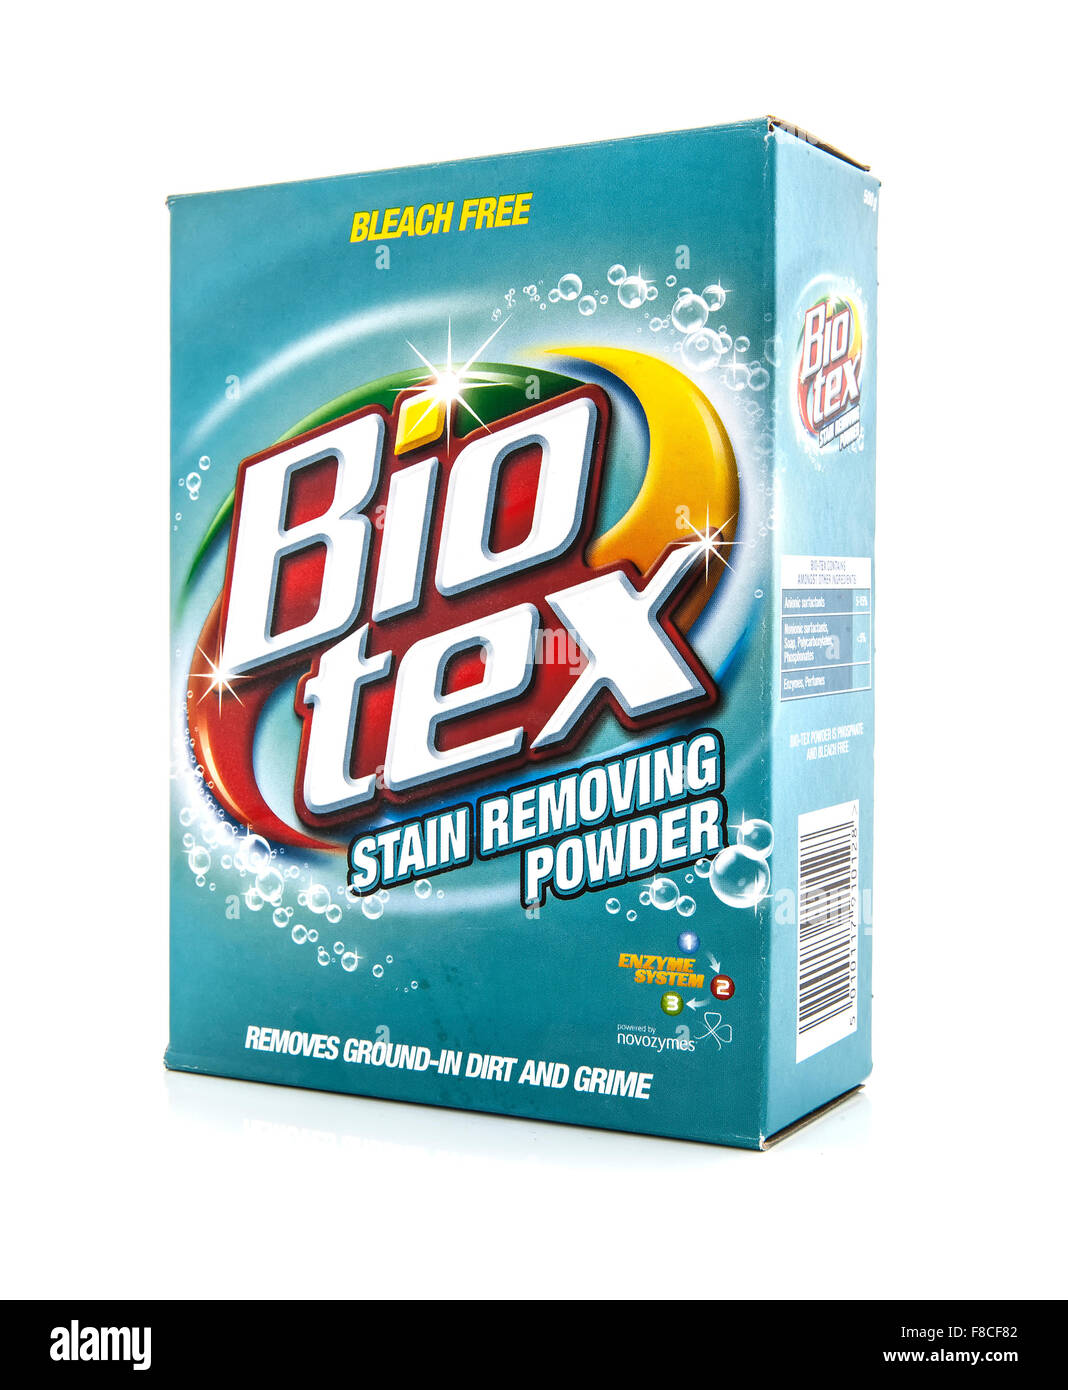 Box of  Bio Tex bleach free stain removing powder on a white background - Stock Image